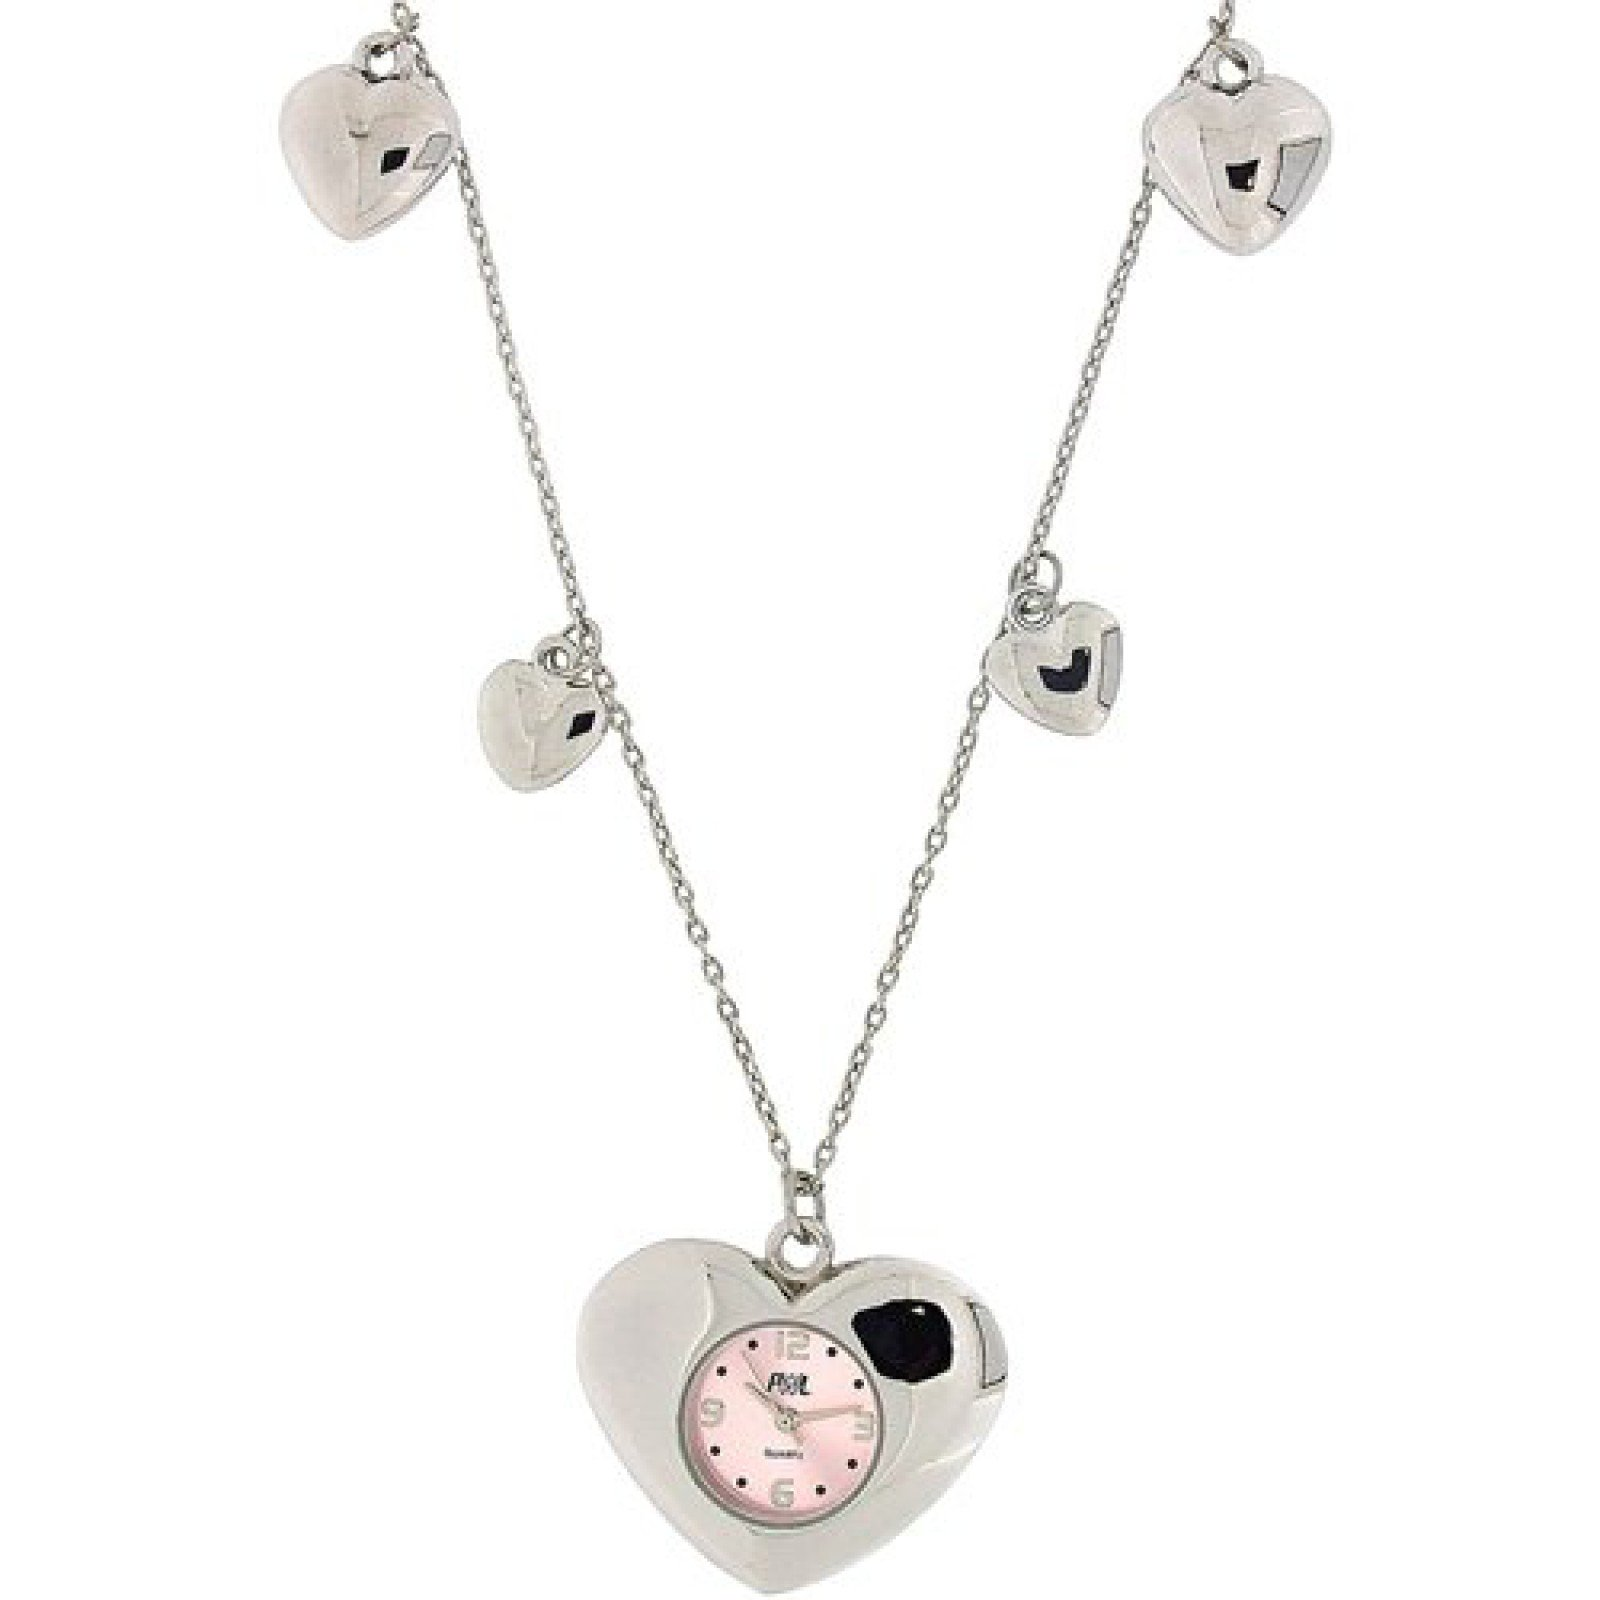 Pwl Ladies Pink Dial Silver Tone 30 Necklace Watch With Heart Charms